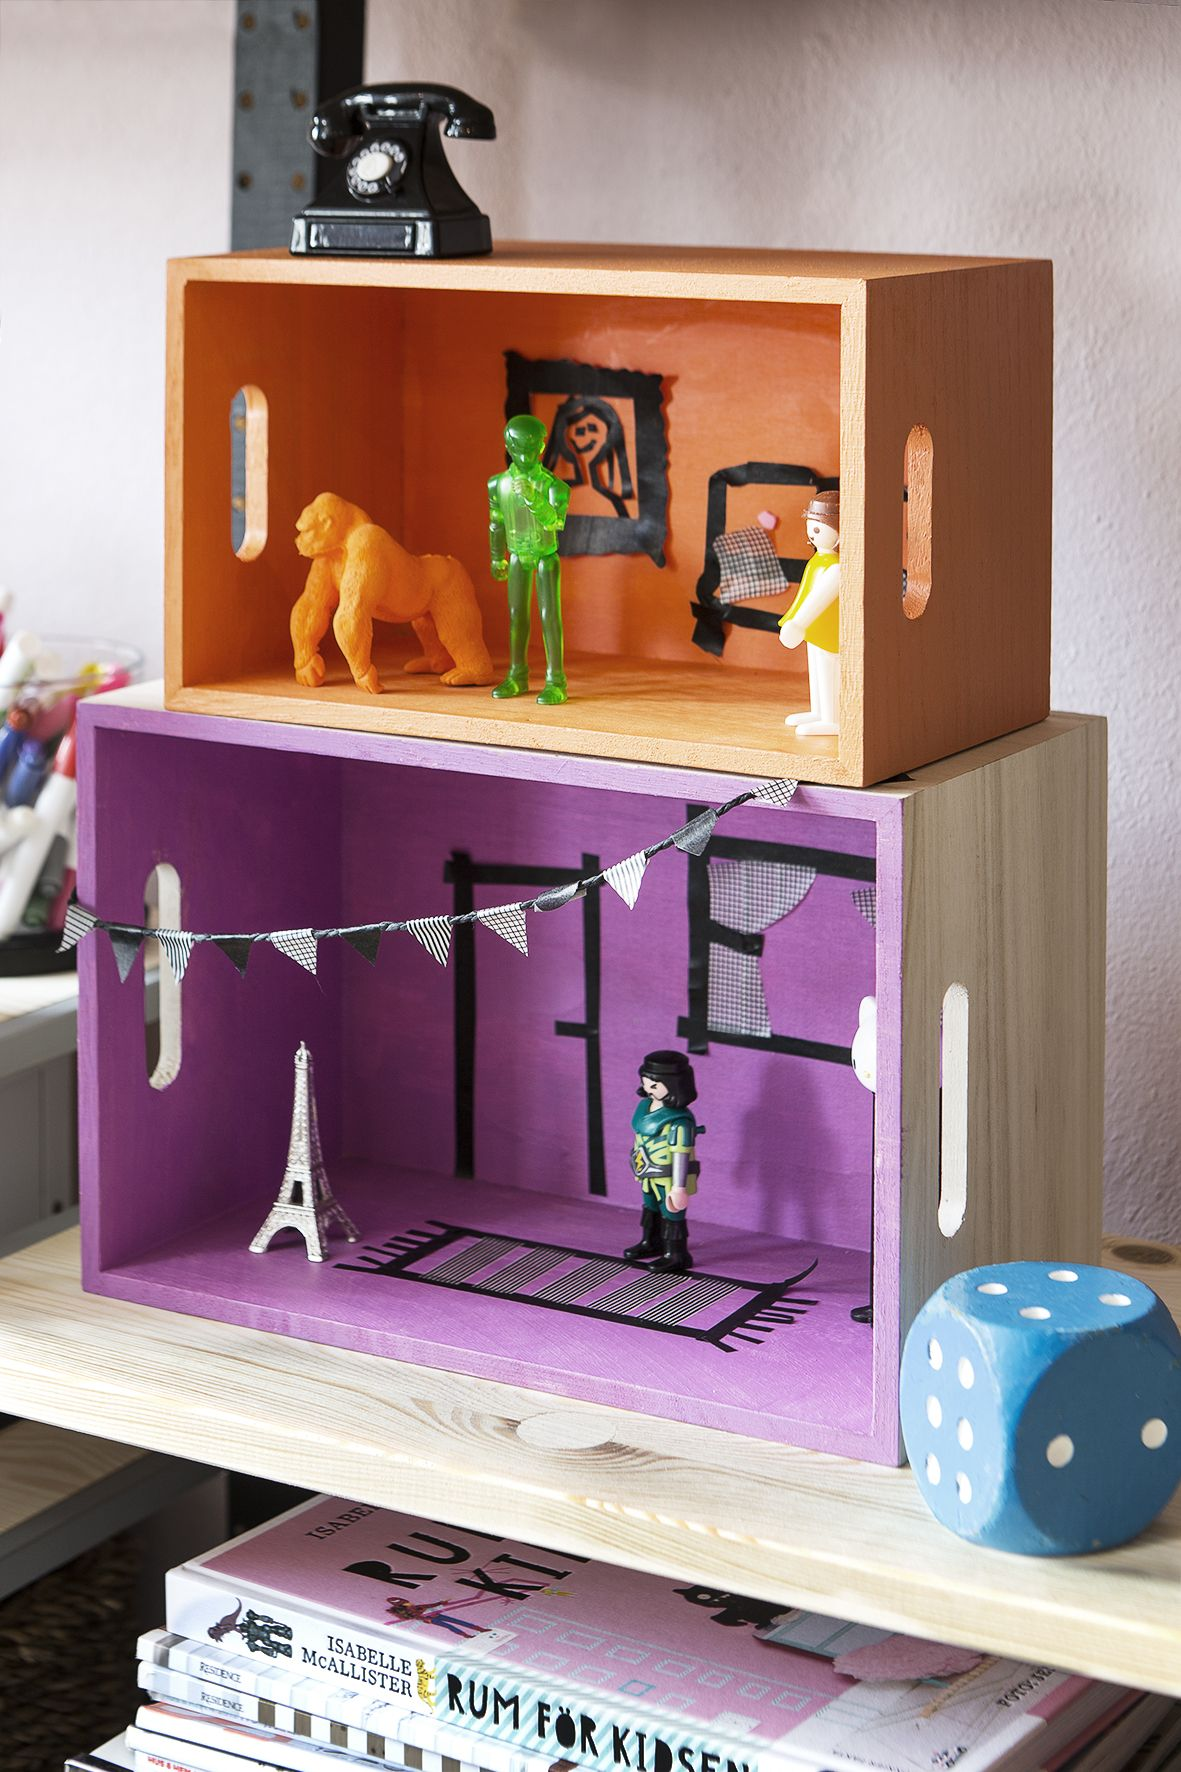 Design Make Your Own Dollhouse make your own dollhouse isabelle mcallister for granit dollhouse